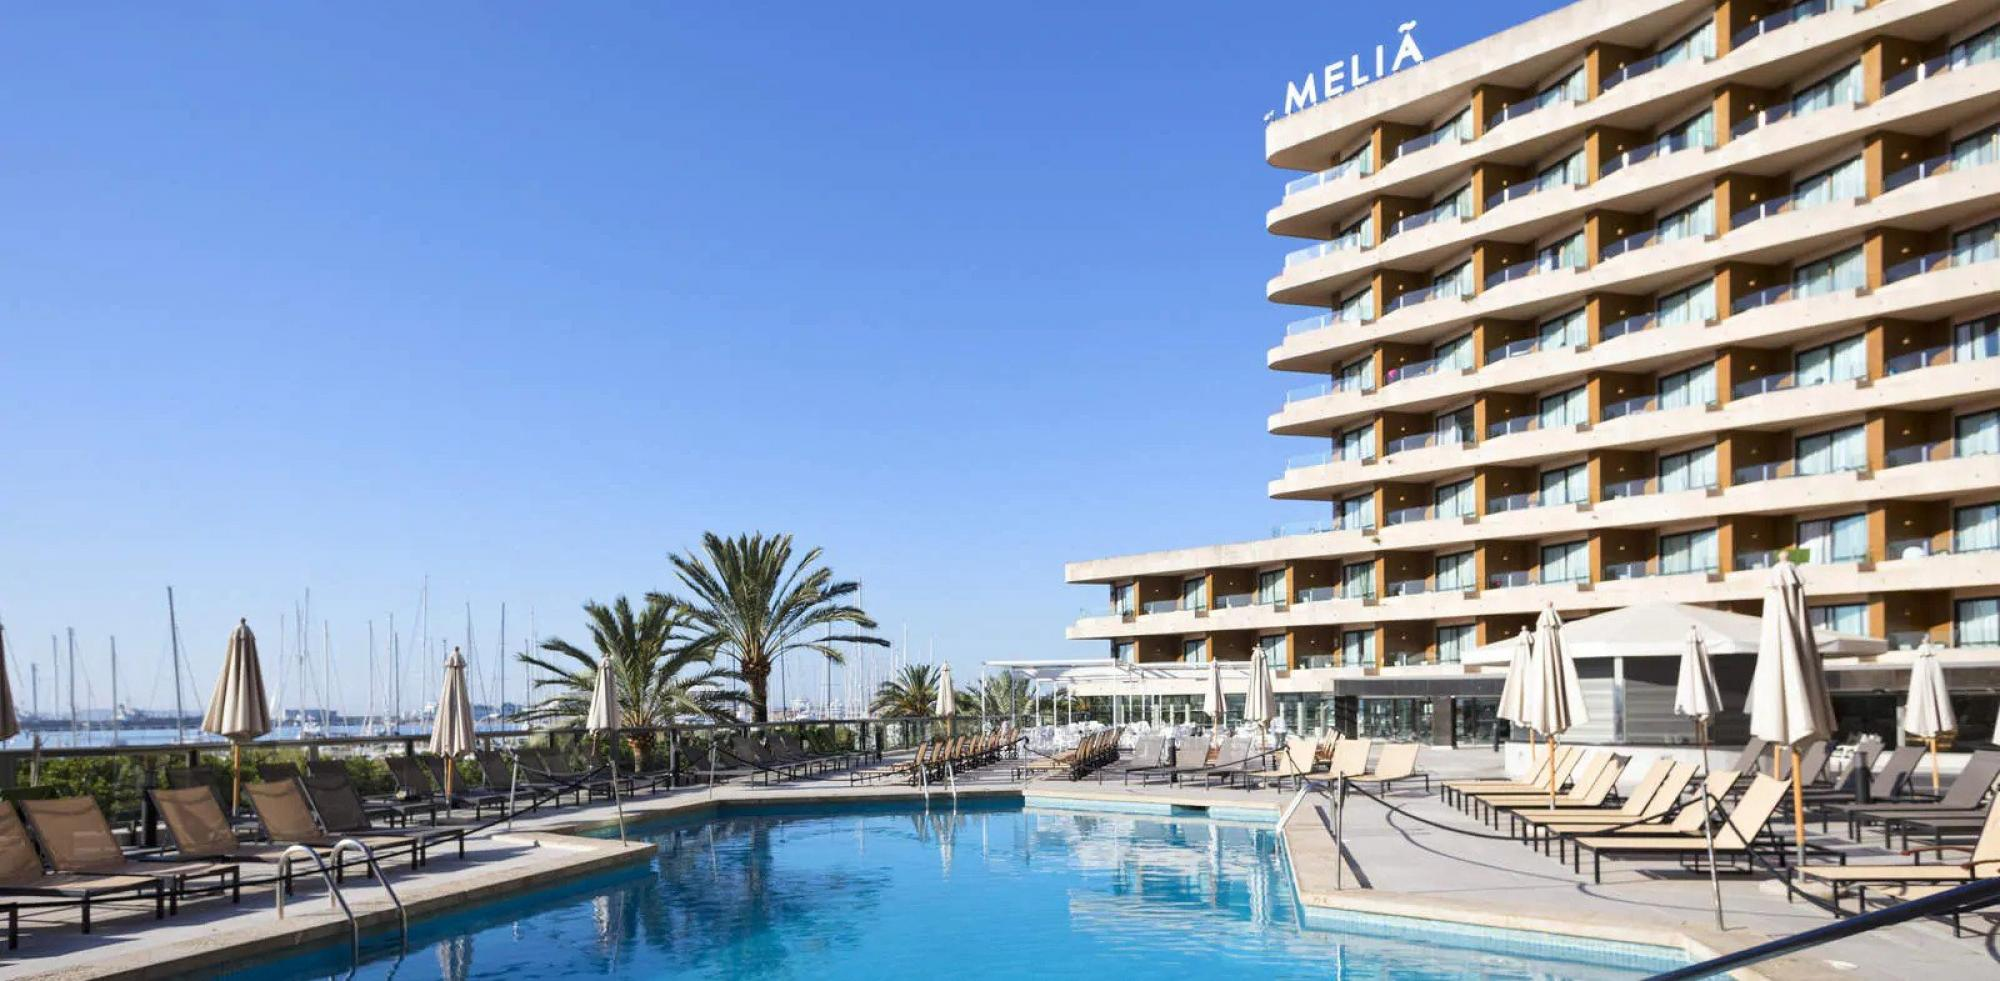 The Melia Palma Marina's impressive sea view pool situated in gorgeous Mallorca.